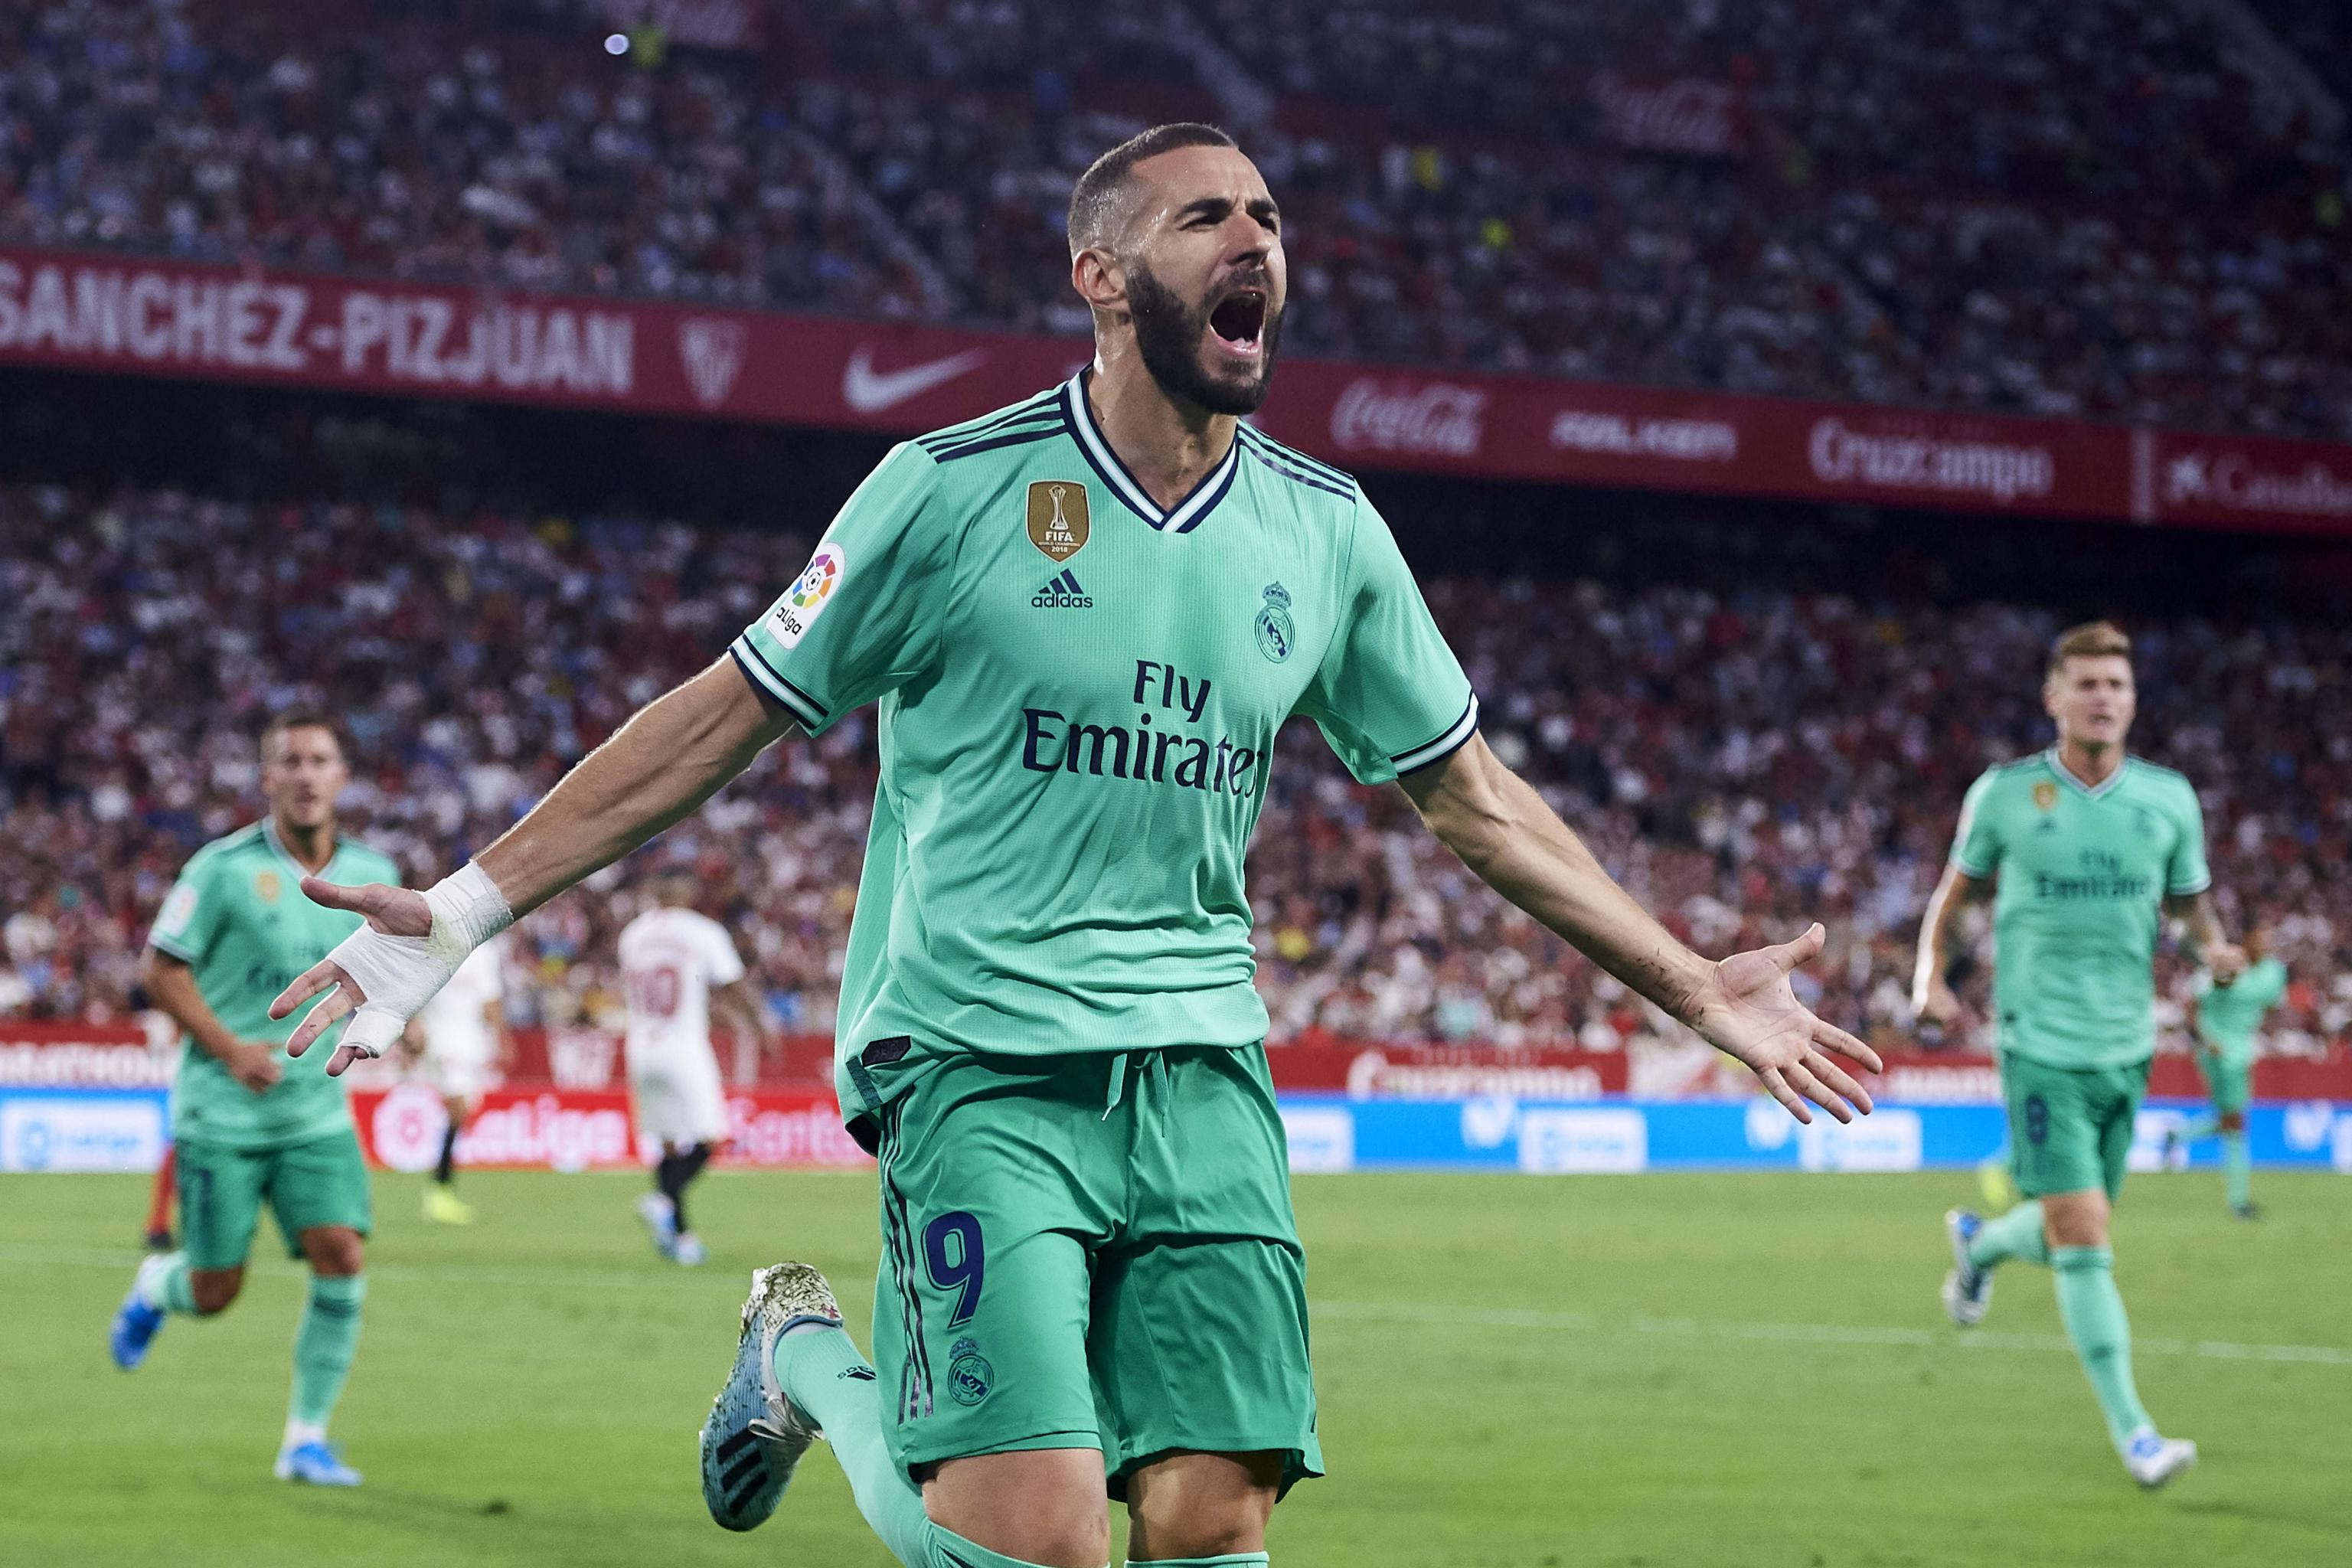 Real Madrid Vs Osasuna Odds Live Stream Tv Schedule And Preview Bleacher Report Latest News Videos And Highlights